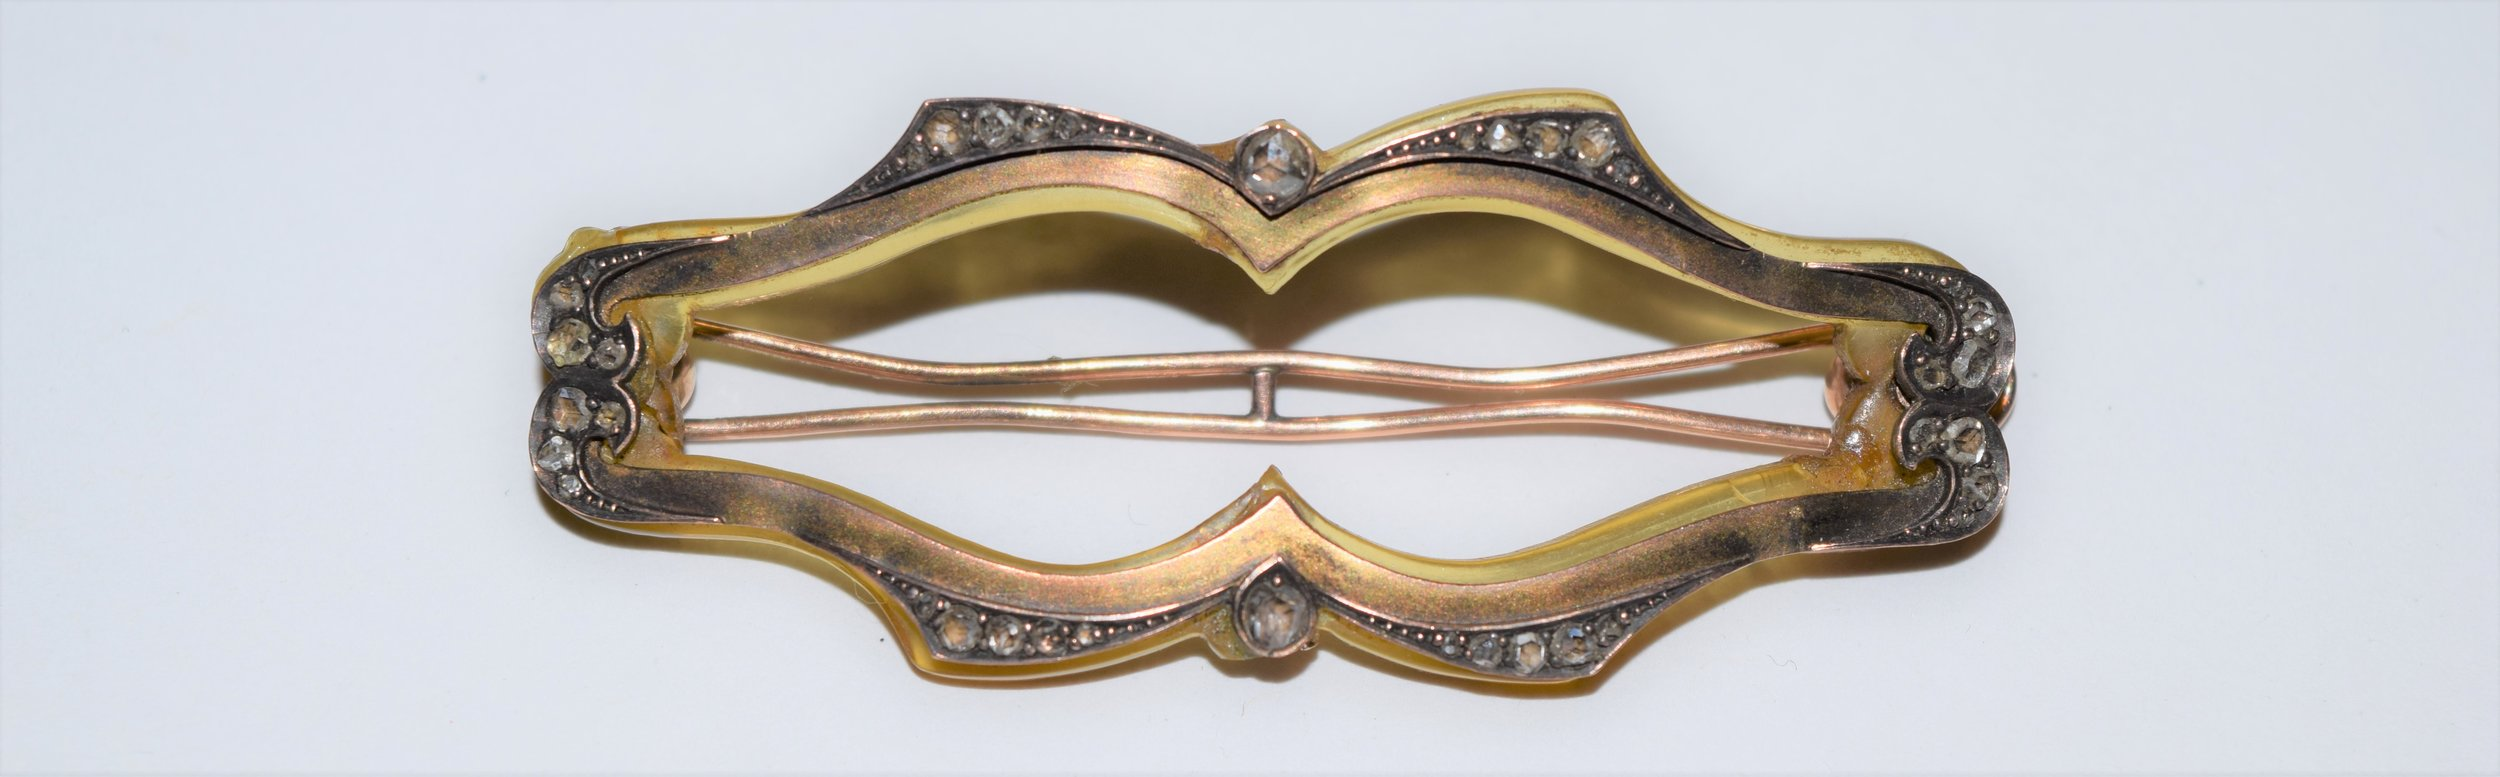 Art Nouveau horn barrette c.1880 - the rose cut diamond-set 10K gold frontspiece is delicately riveted to the horn. The horn would most likely have been bleached with hydrogen peroxide to achieve the pale yellow hue.